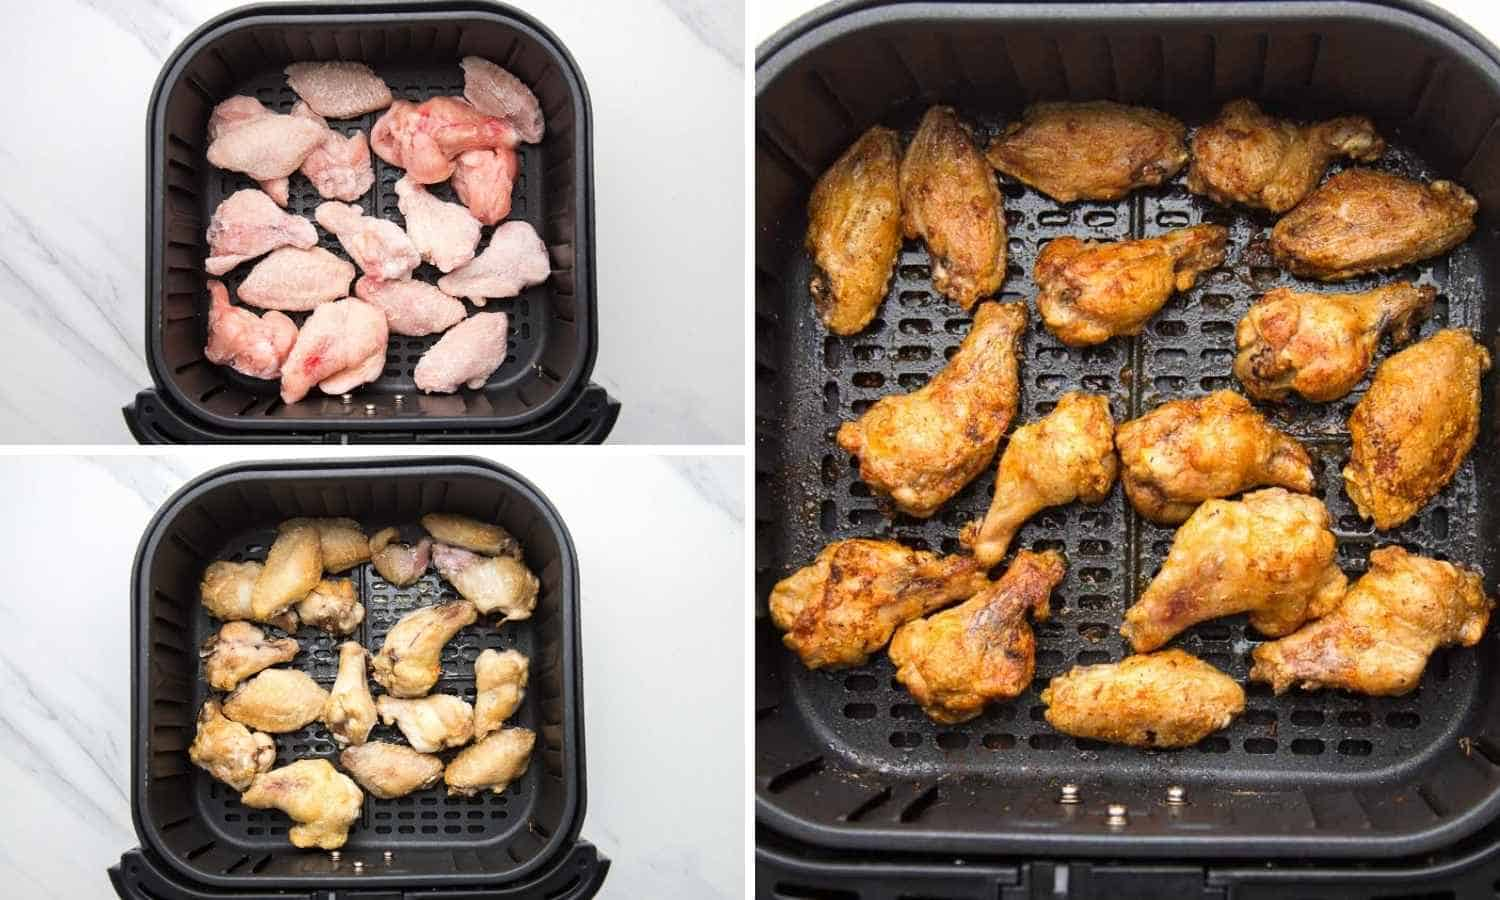 A collage of 3 images how to make frozen chicken wings in the air fryer